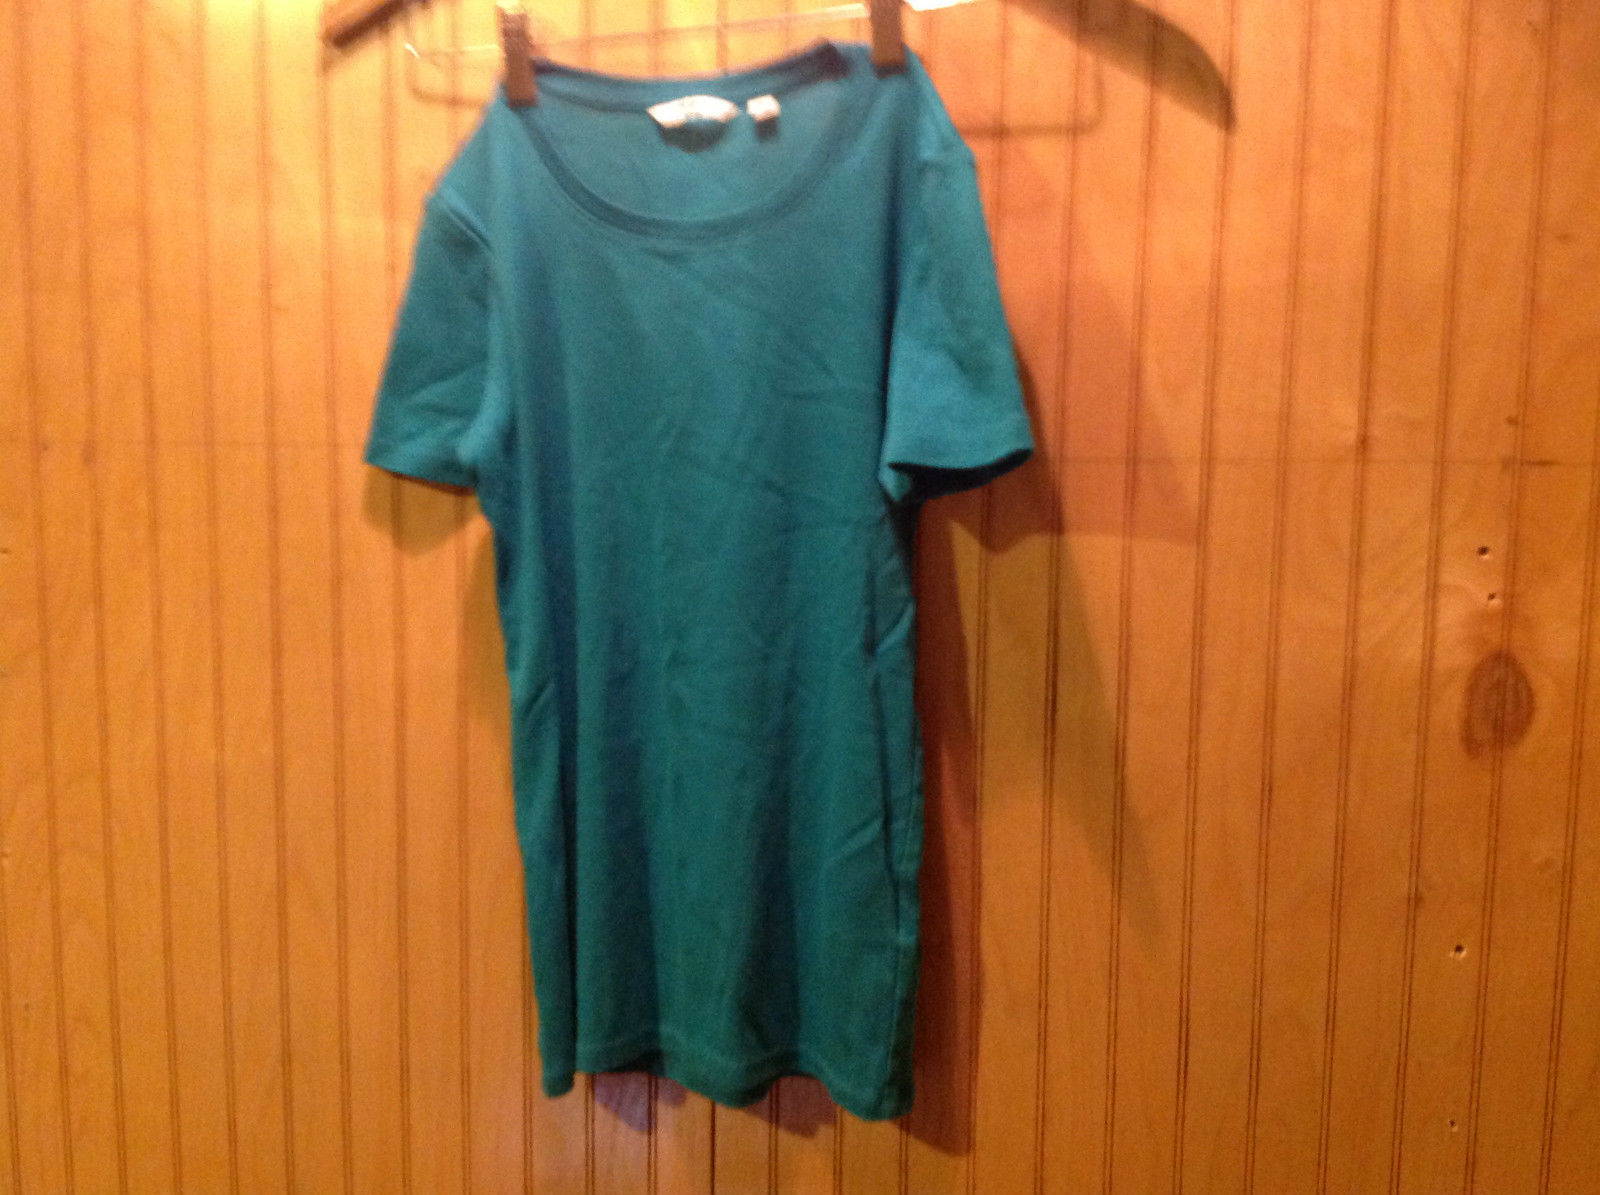 Short Sleeve Teal T Shirt Dress Uniqlo Size XS